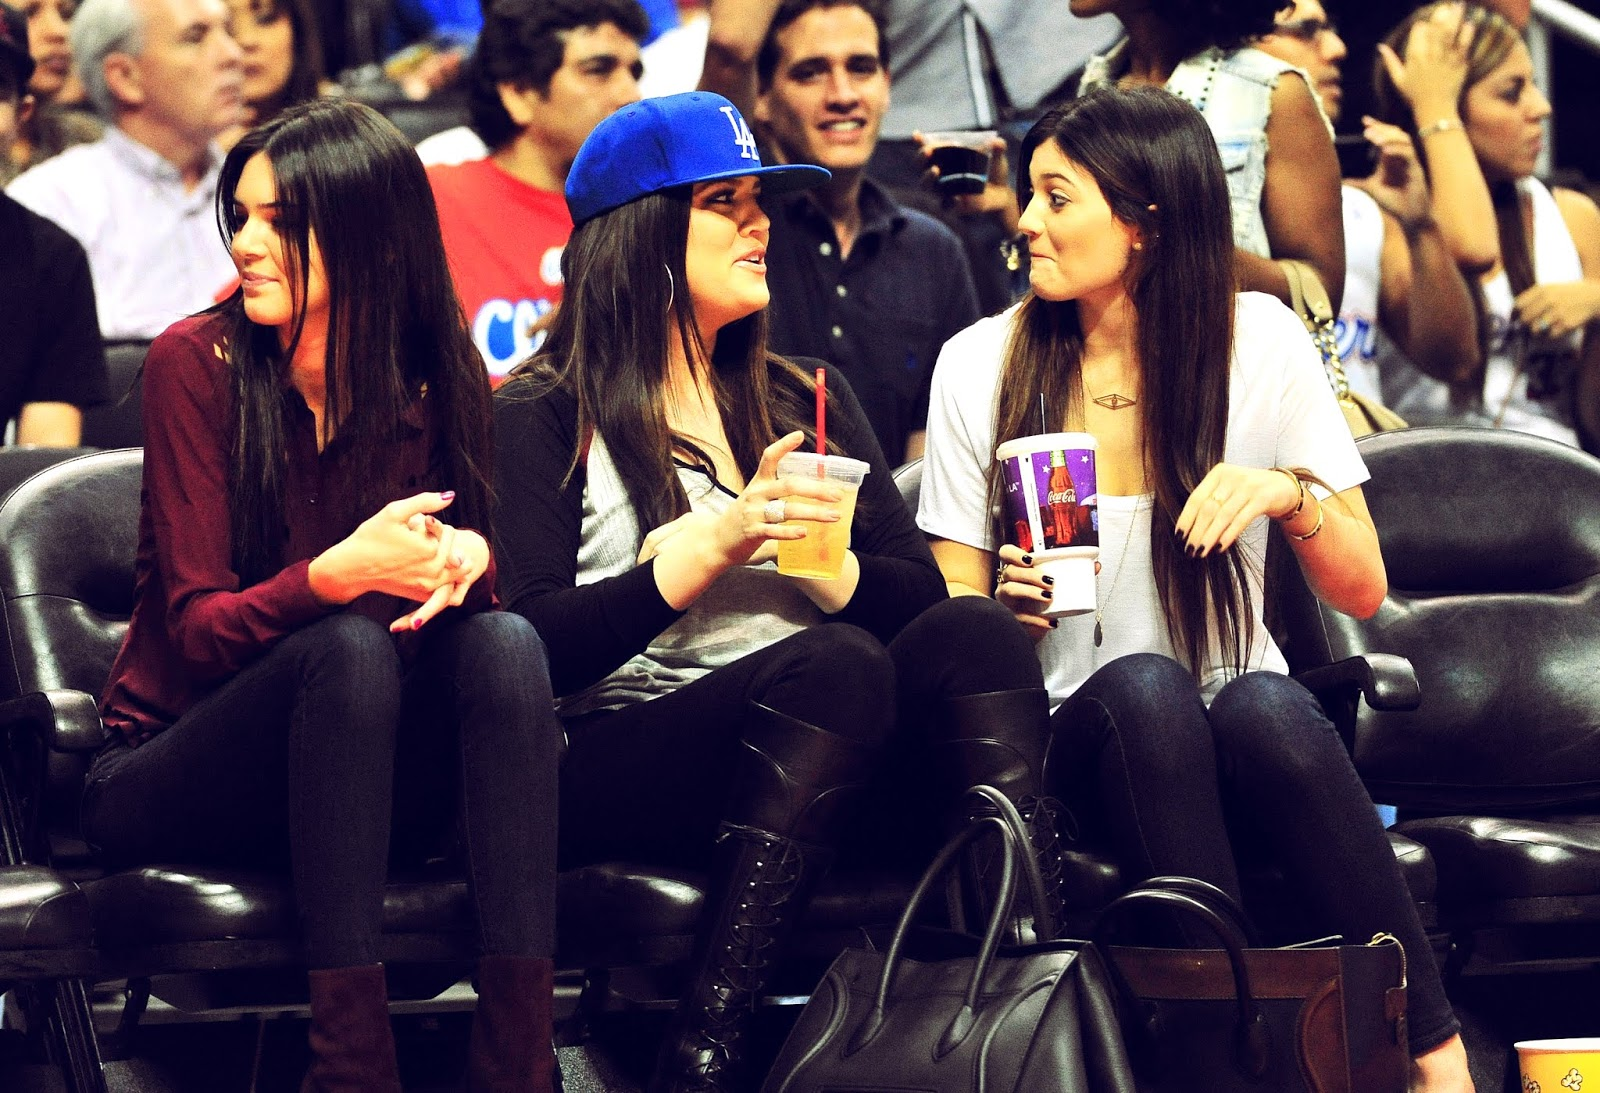 10 - Watching The Los Angeles Clippers Game on October 17, 2012